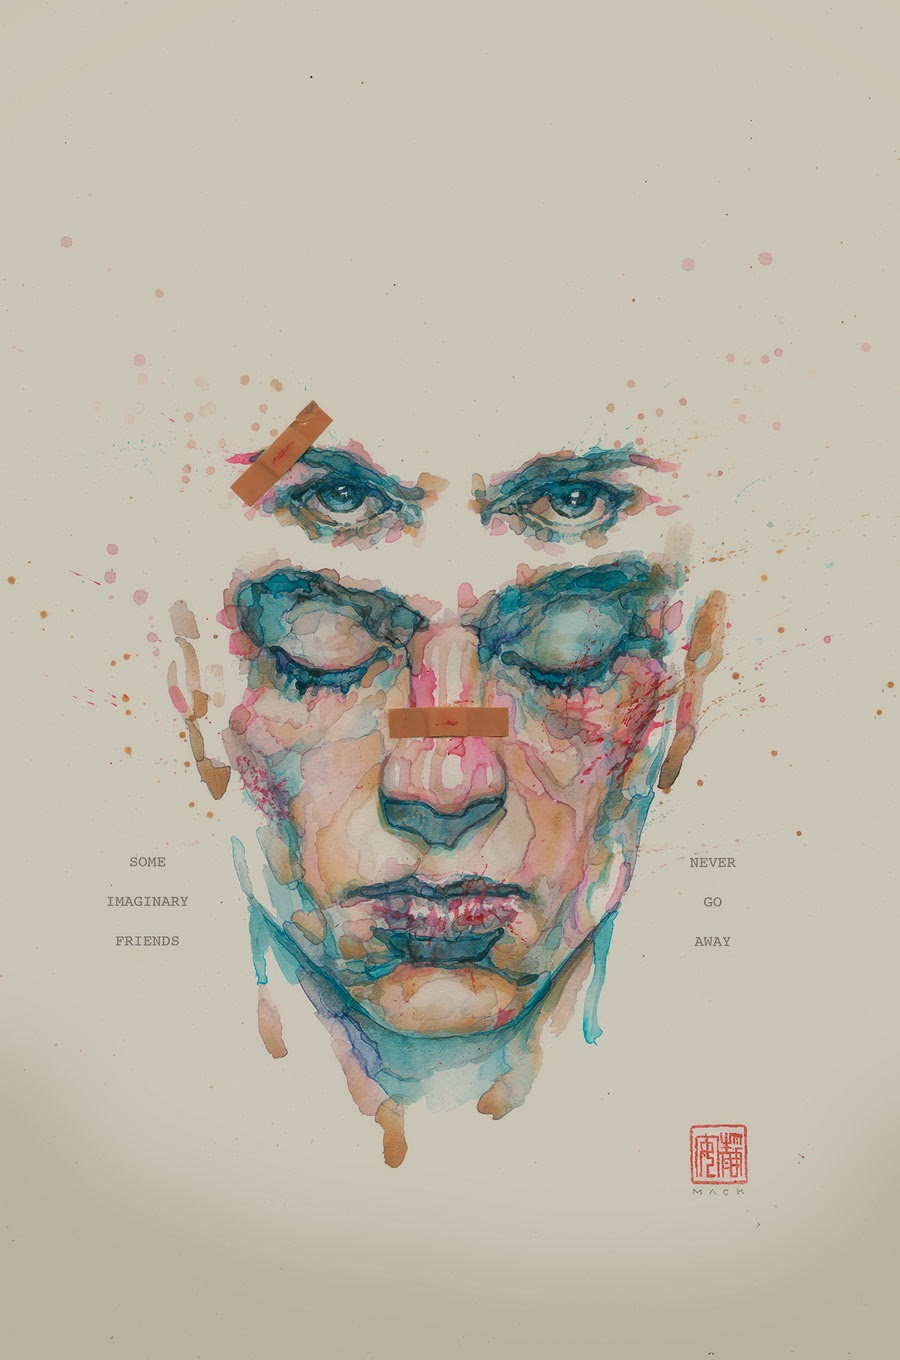 Watercolor book covers - Chuck Palahniuk W Cameron Stewart A Variant Cover Dave Stewart C David Mack Cover And Lee Bermejo Variant Cover On Sale May 27 Ongoing